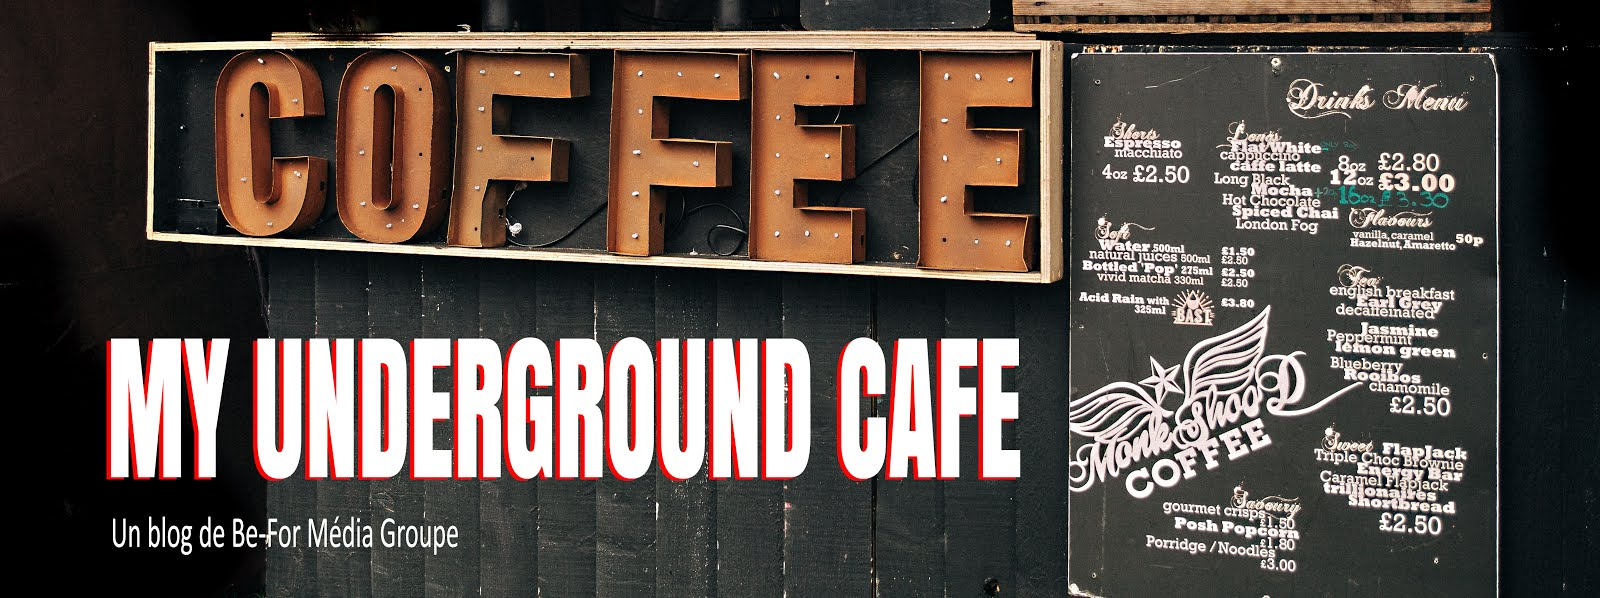 My Under Ground Cafe